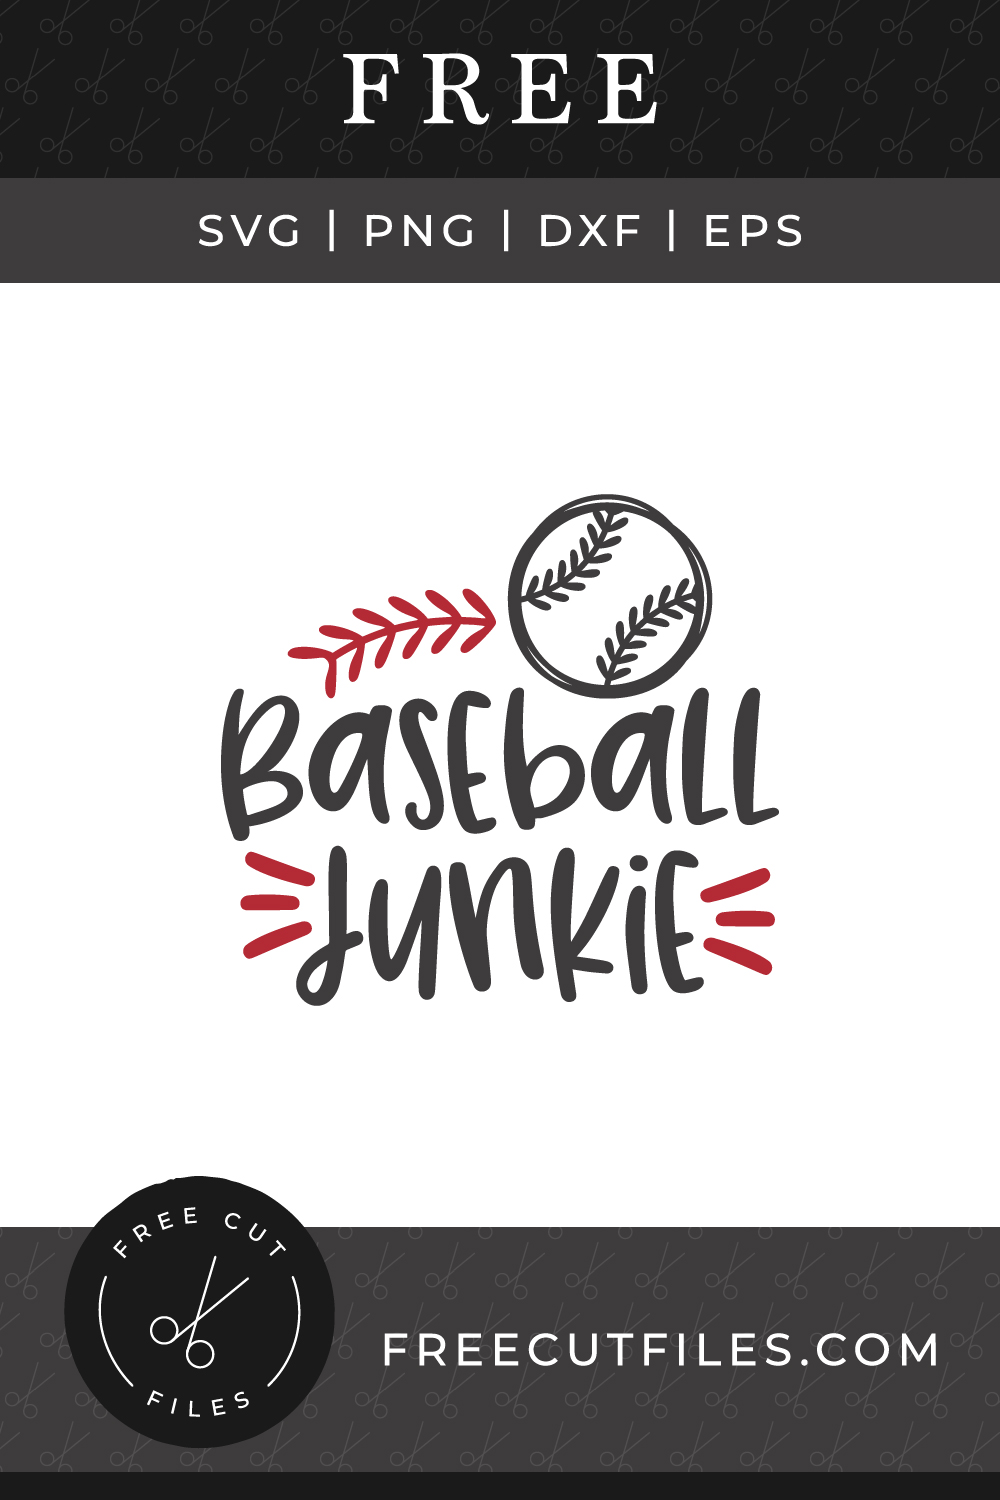 Baseball junkie Free SVG quote